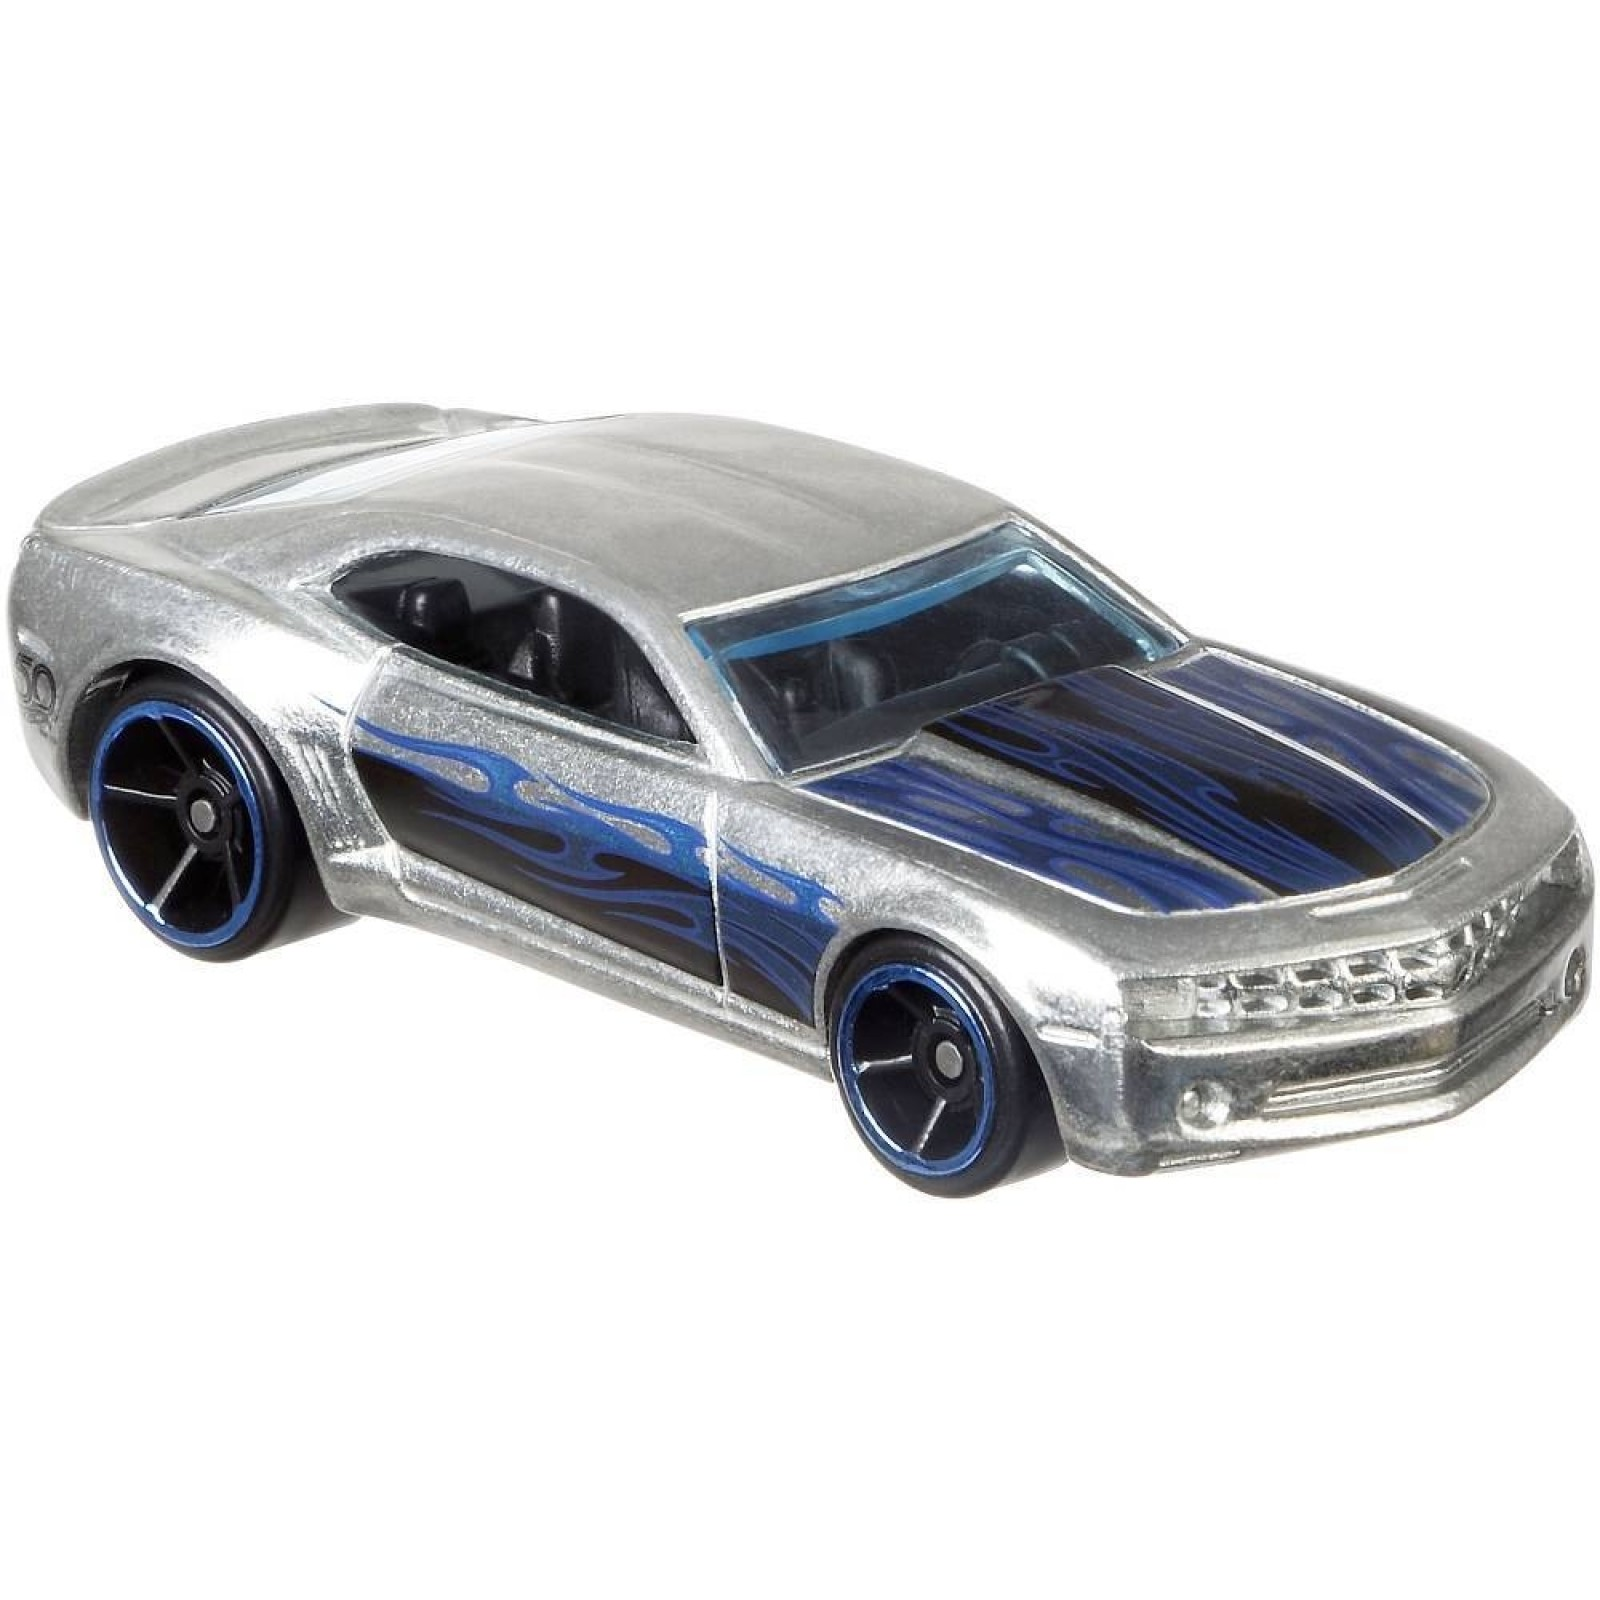 Hot Wheels - Chevy Camaro Concept - Zamac 50 Anos - FRN25